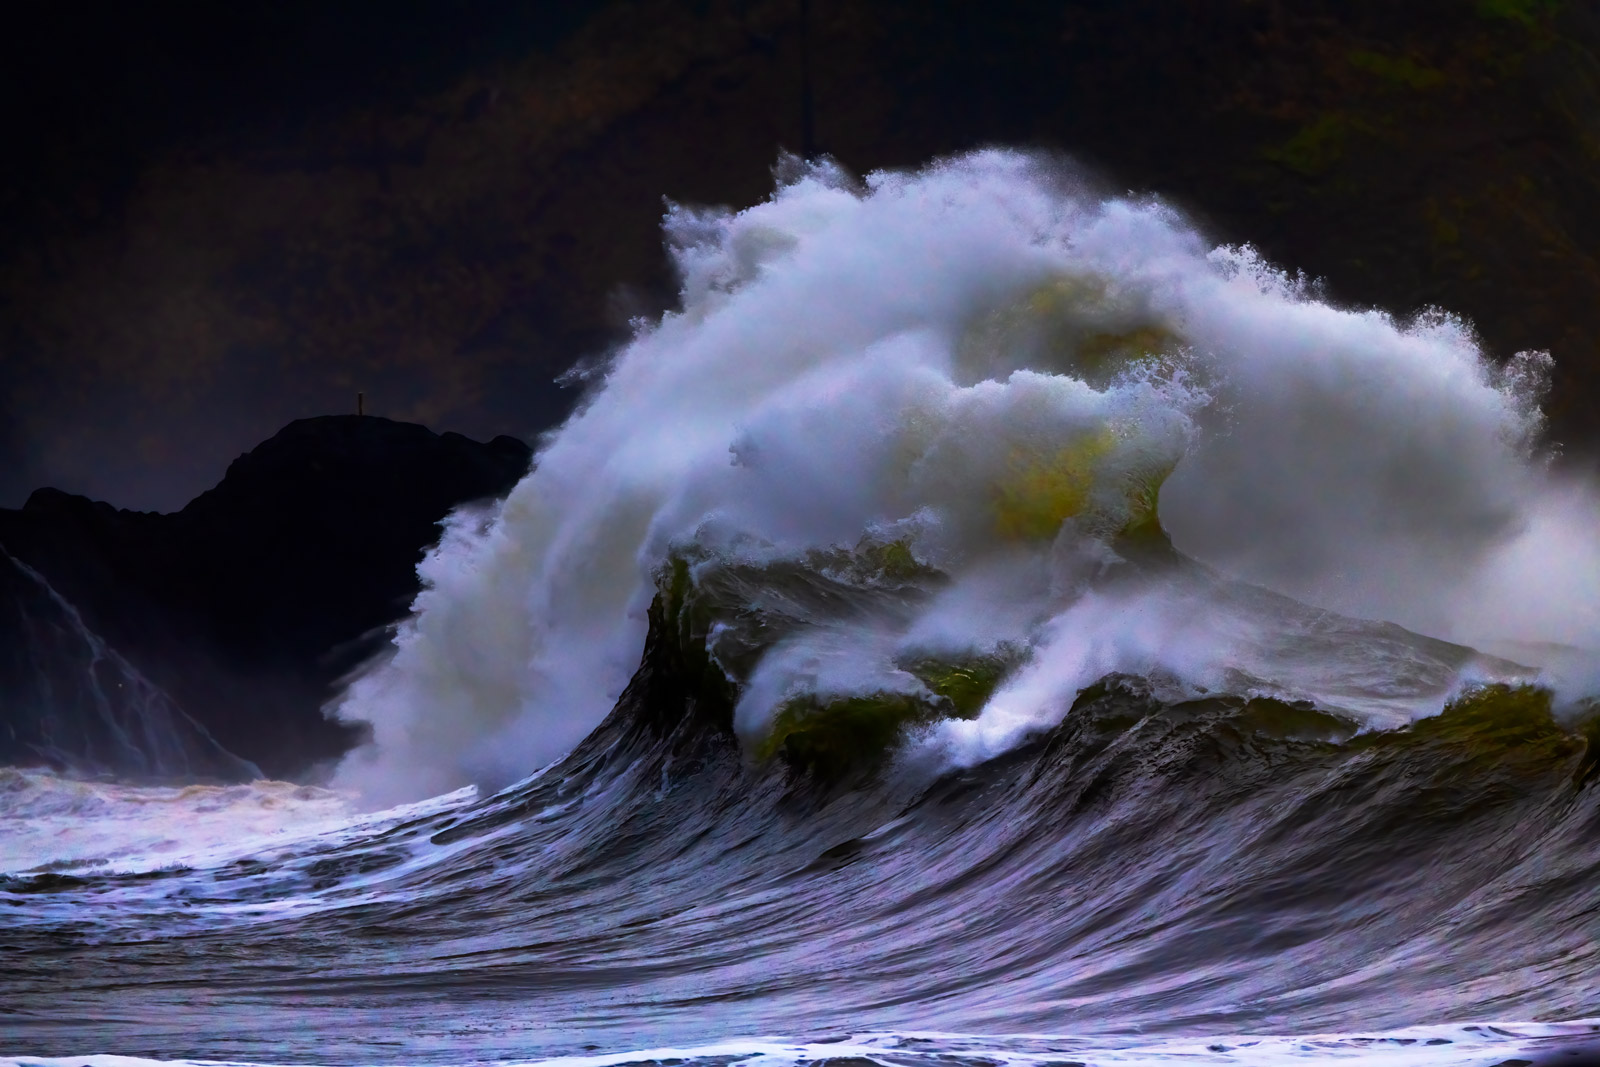 A Limited Edition, Fine Art photograph of a closeup of a violent ocean wave at Cape Disappointment, Washington during a storm...